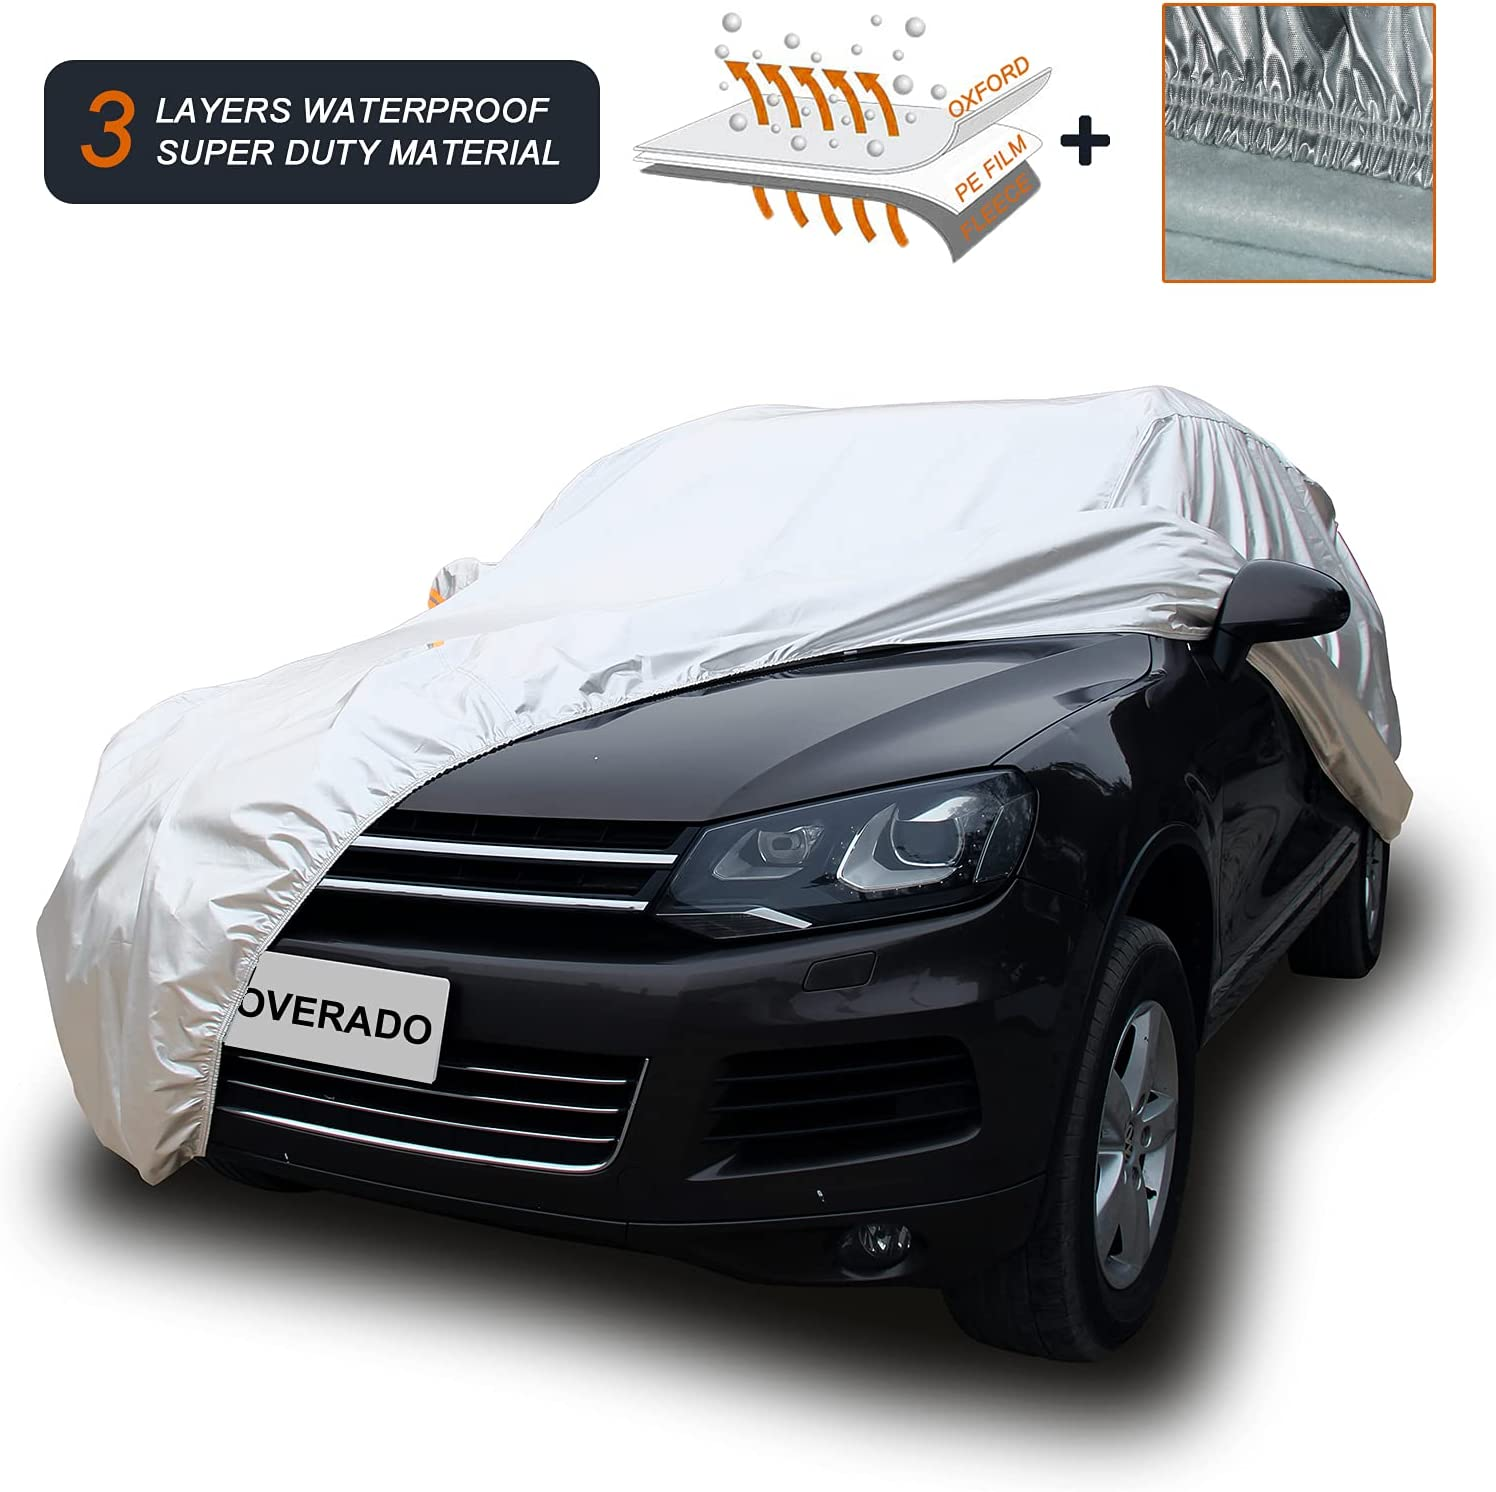 Coverado Super Duty Max New item 71% OFF Car Cover Waterproof All Windproof Snowproof